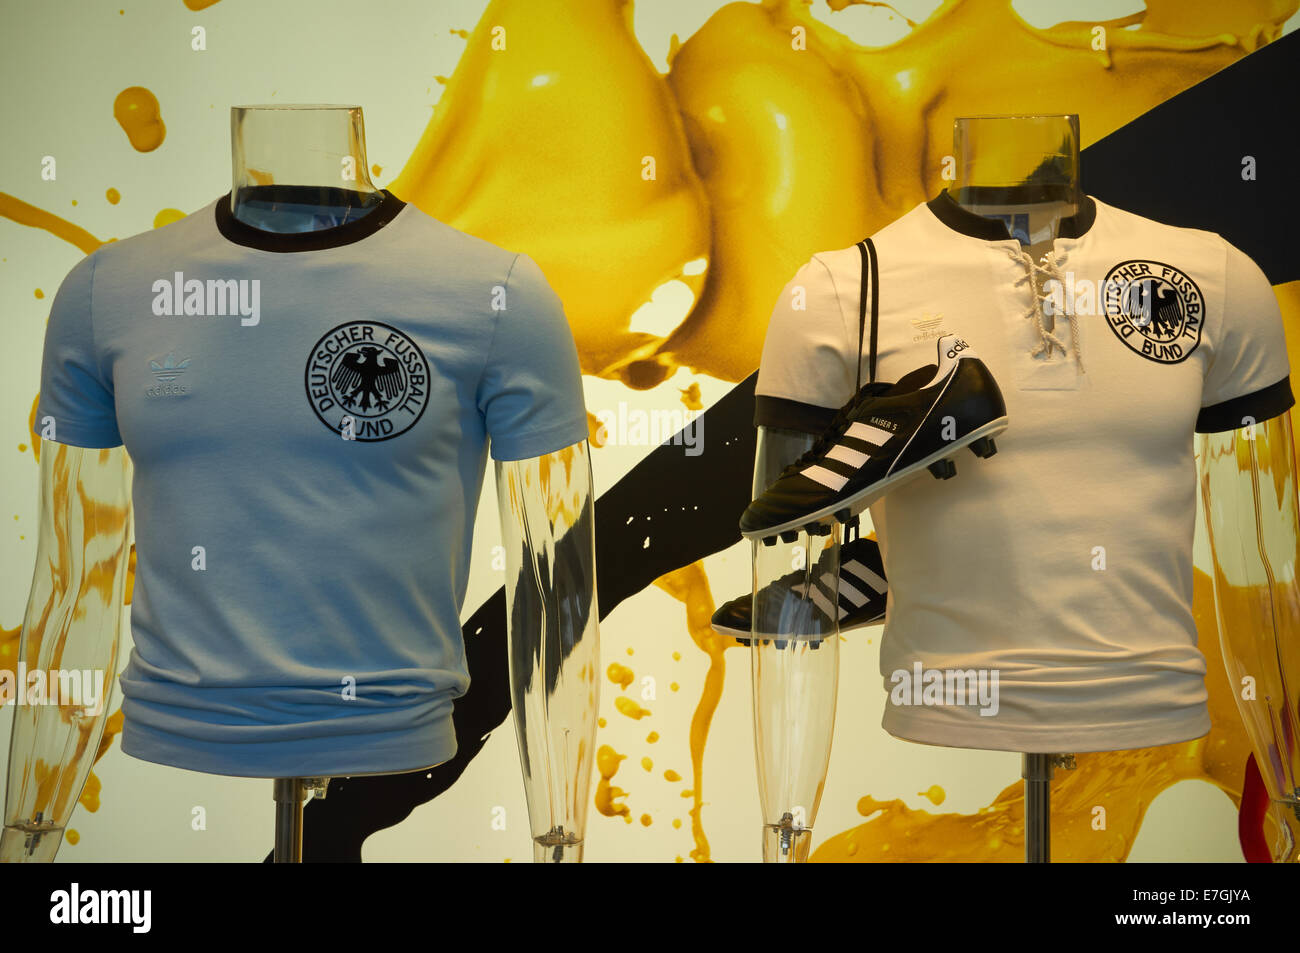 Retro German football shirts on sale in a department store during the 2014 World Cup which Germany won - Stock Image